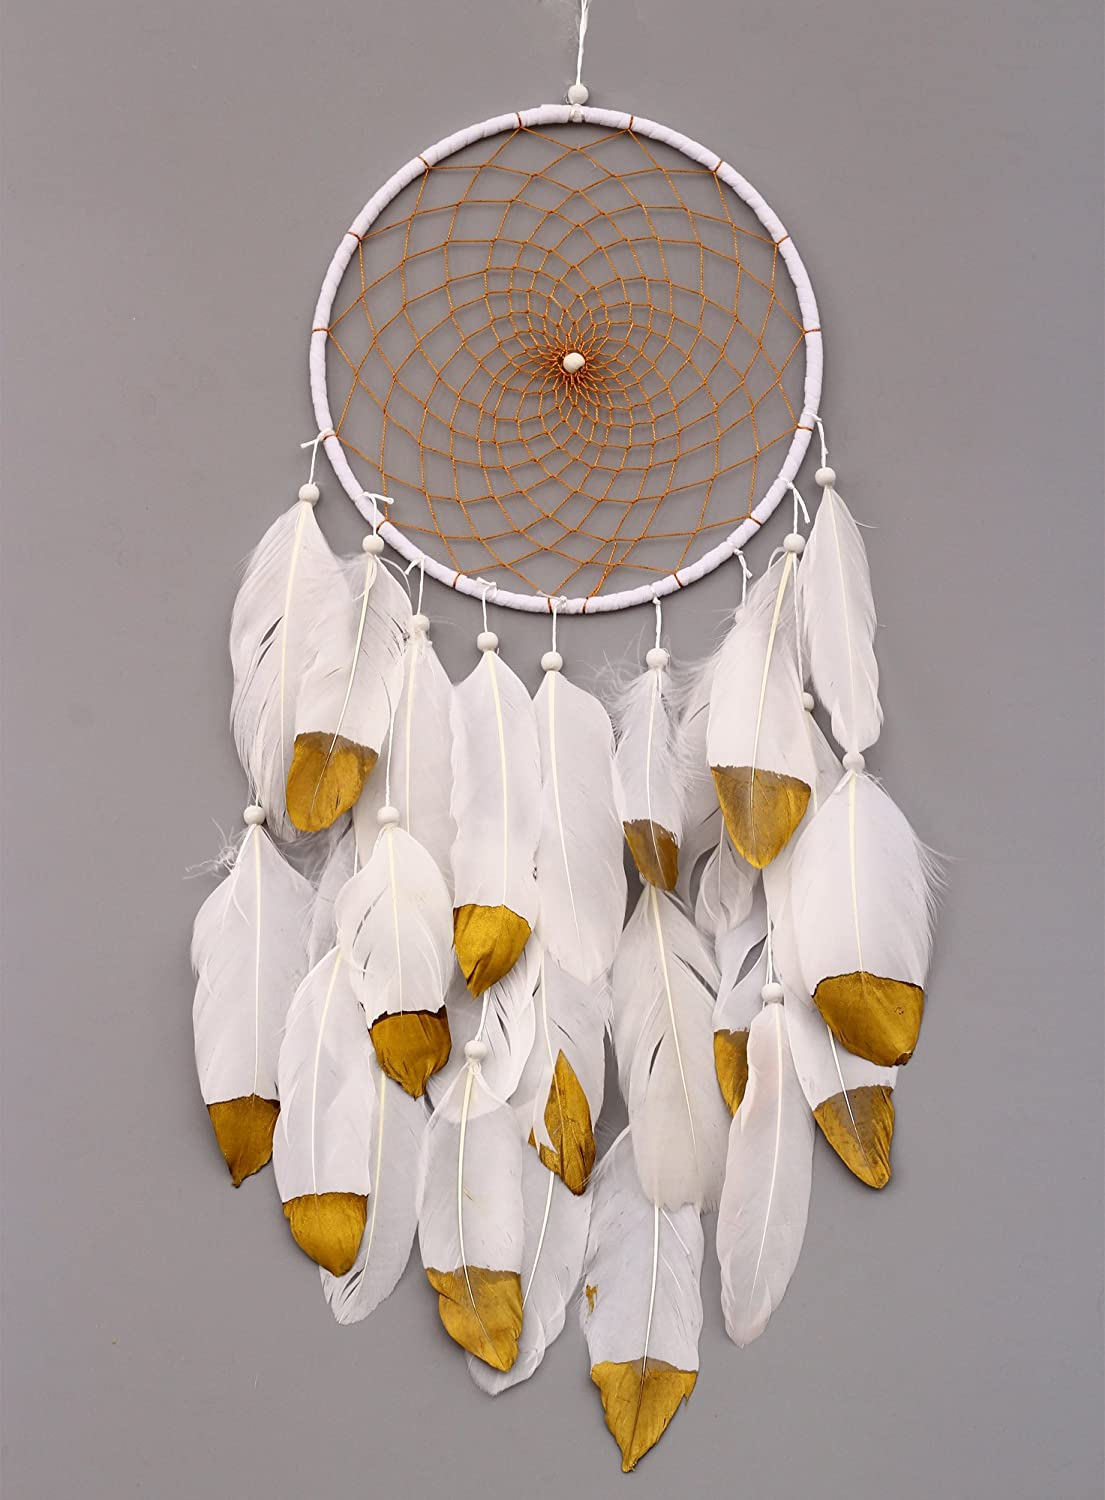 VGIA Handmade Dream Catcher with Feathers Wall Hanging Ornament Craft Gift bumeng001